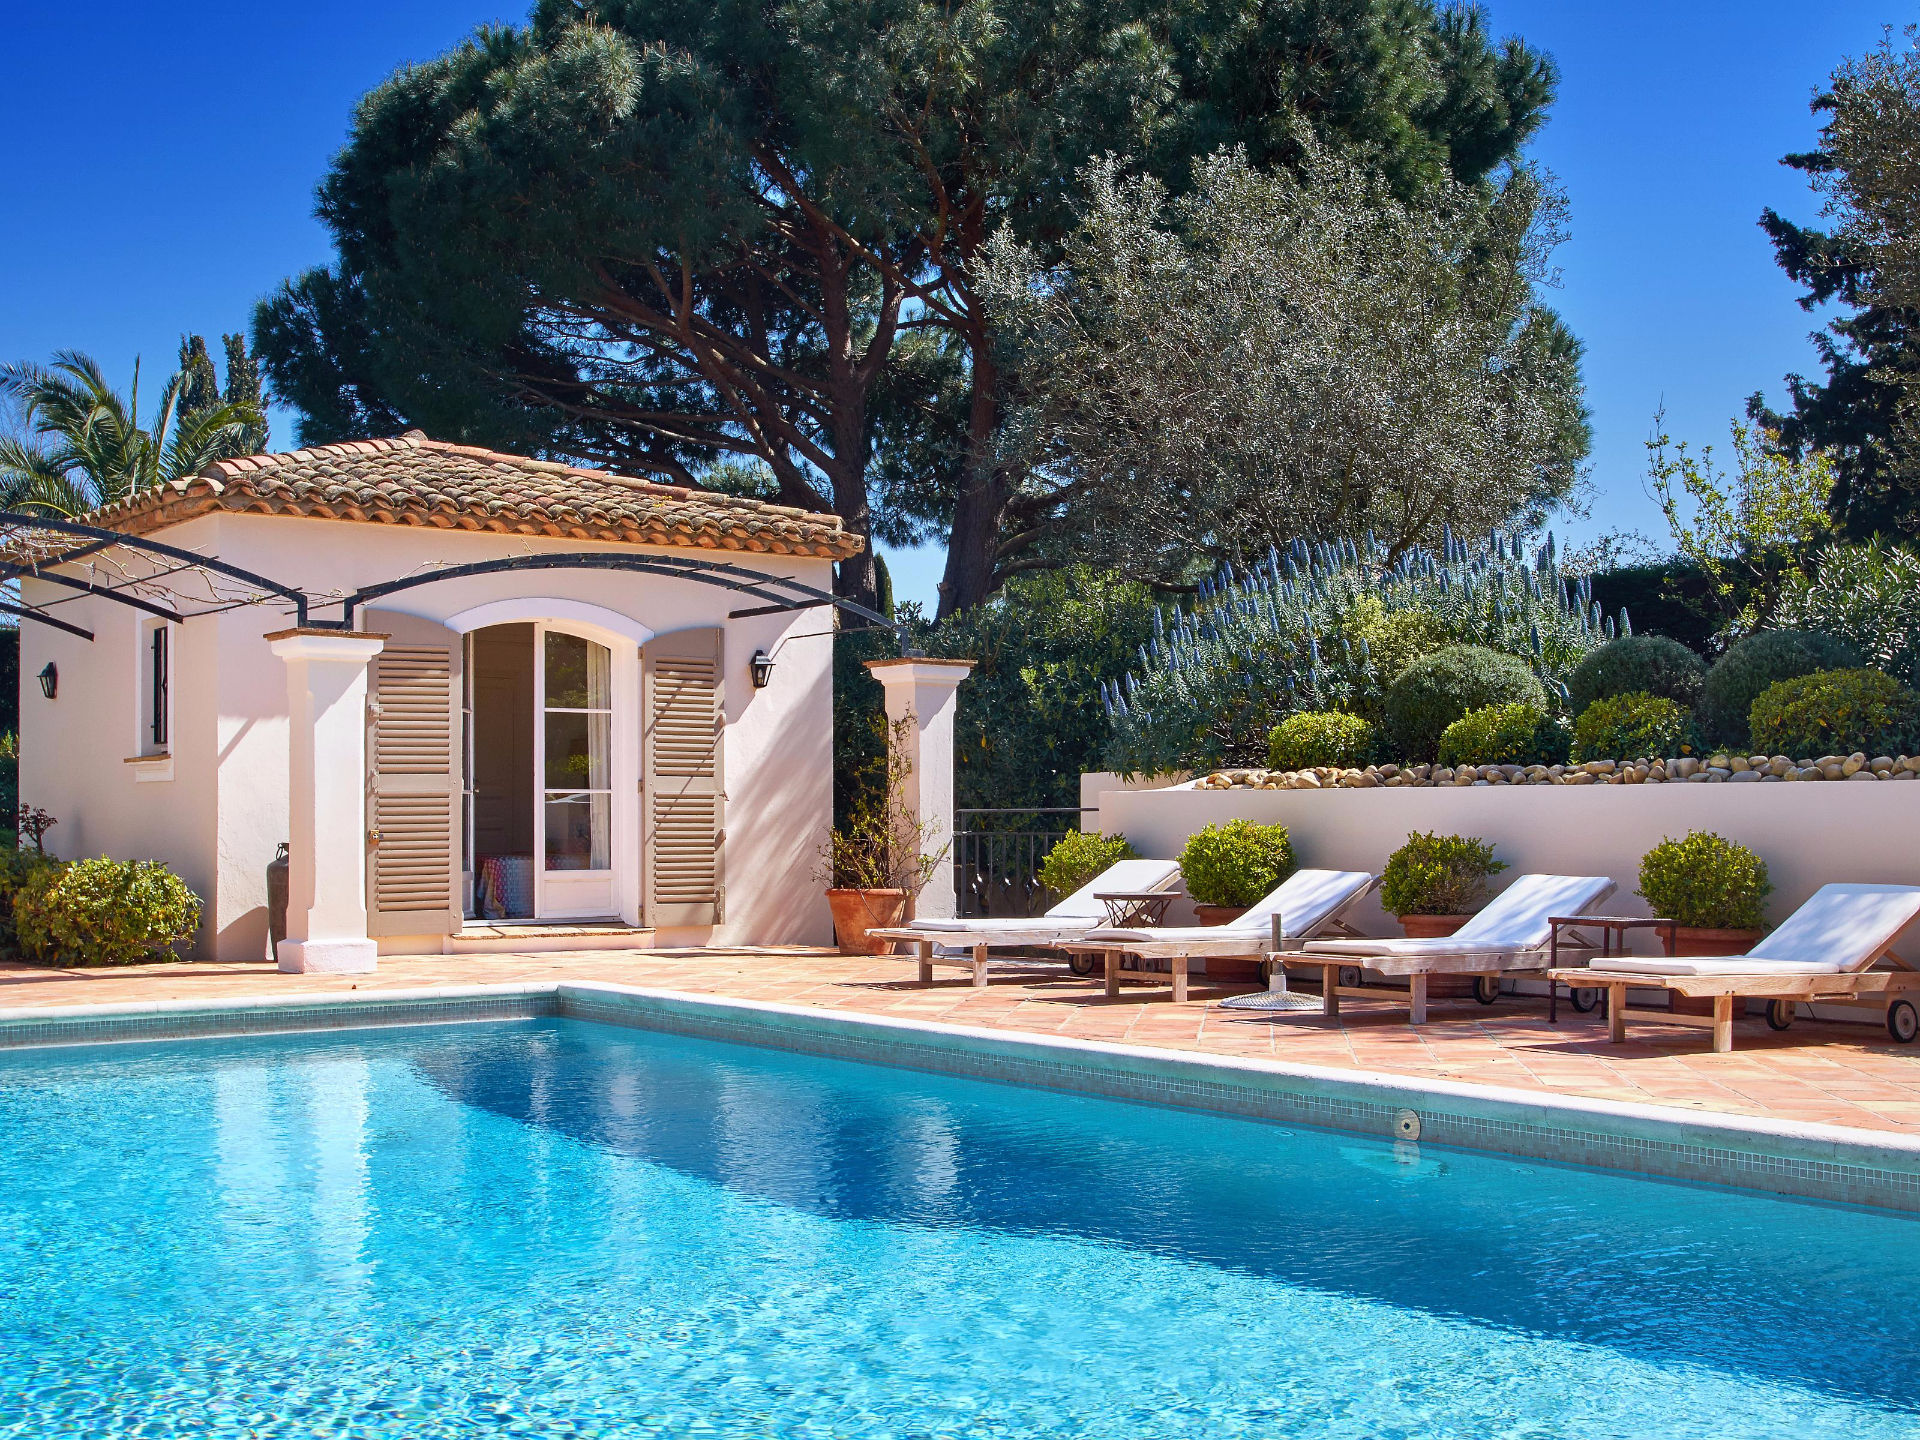 Single Family Home for Sale at Mediterranean style villa in the private domain 'les Parcs de Saint-Tropez' Saint Tropez Saint Tropez, Provence-Alpes-Cote D'Azur, 83990 France